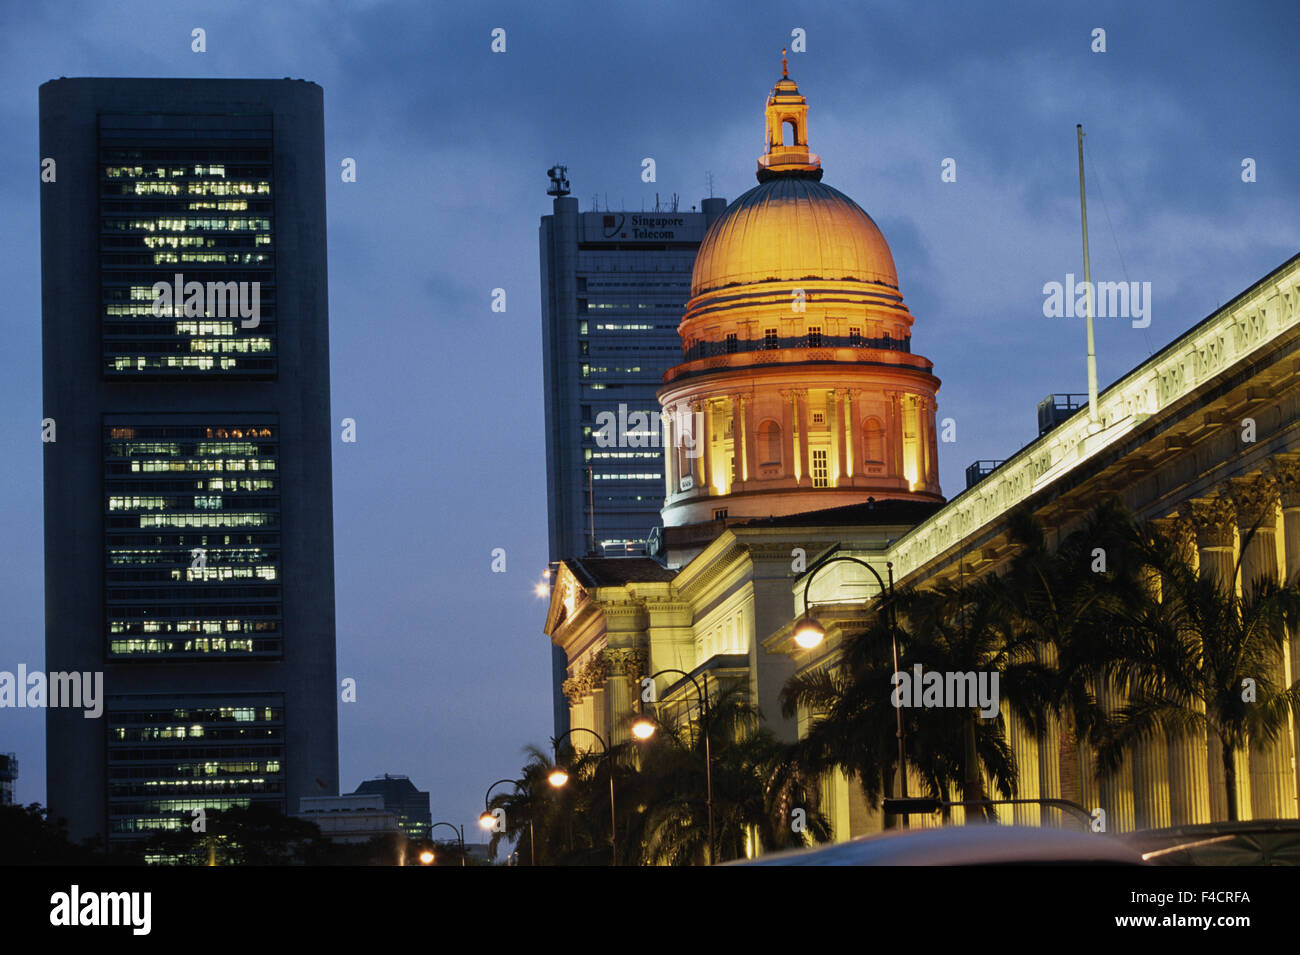 Singapore. Supreme court building at night. (Large format sizes available) - Stock Image